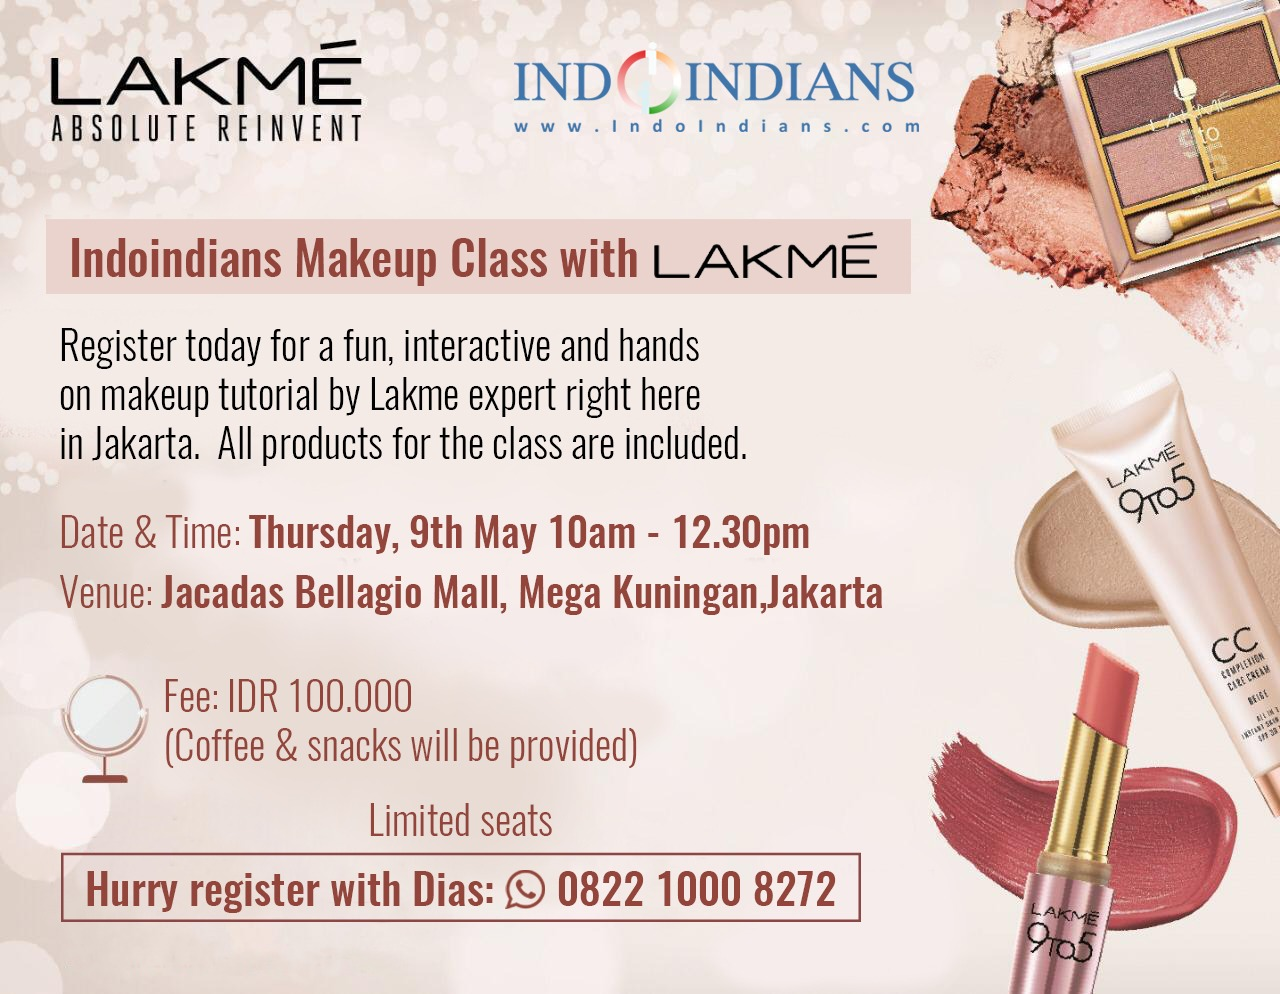 Indoindians 2nd Makeup Workshop with Lakme on Thursday, 9th May